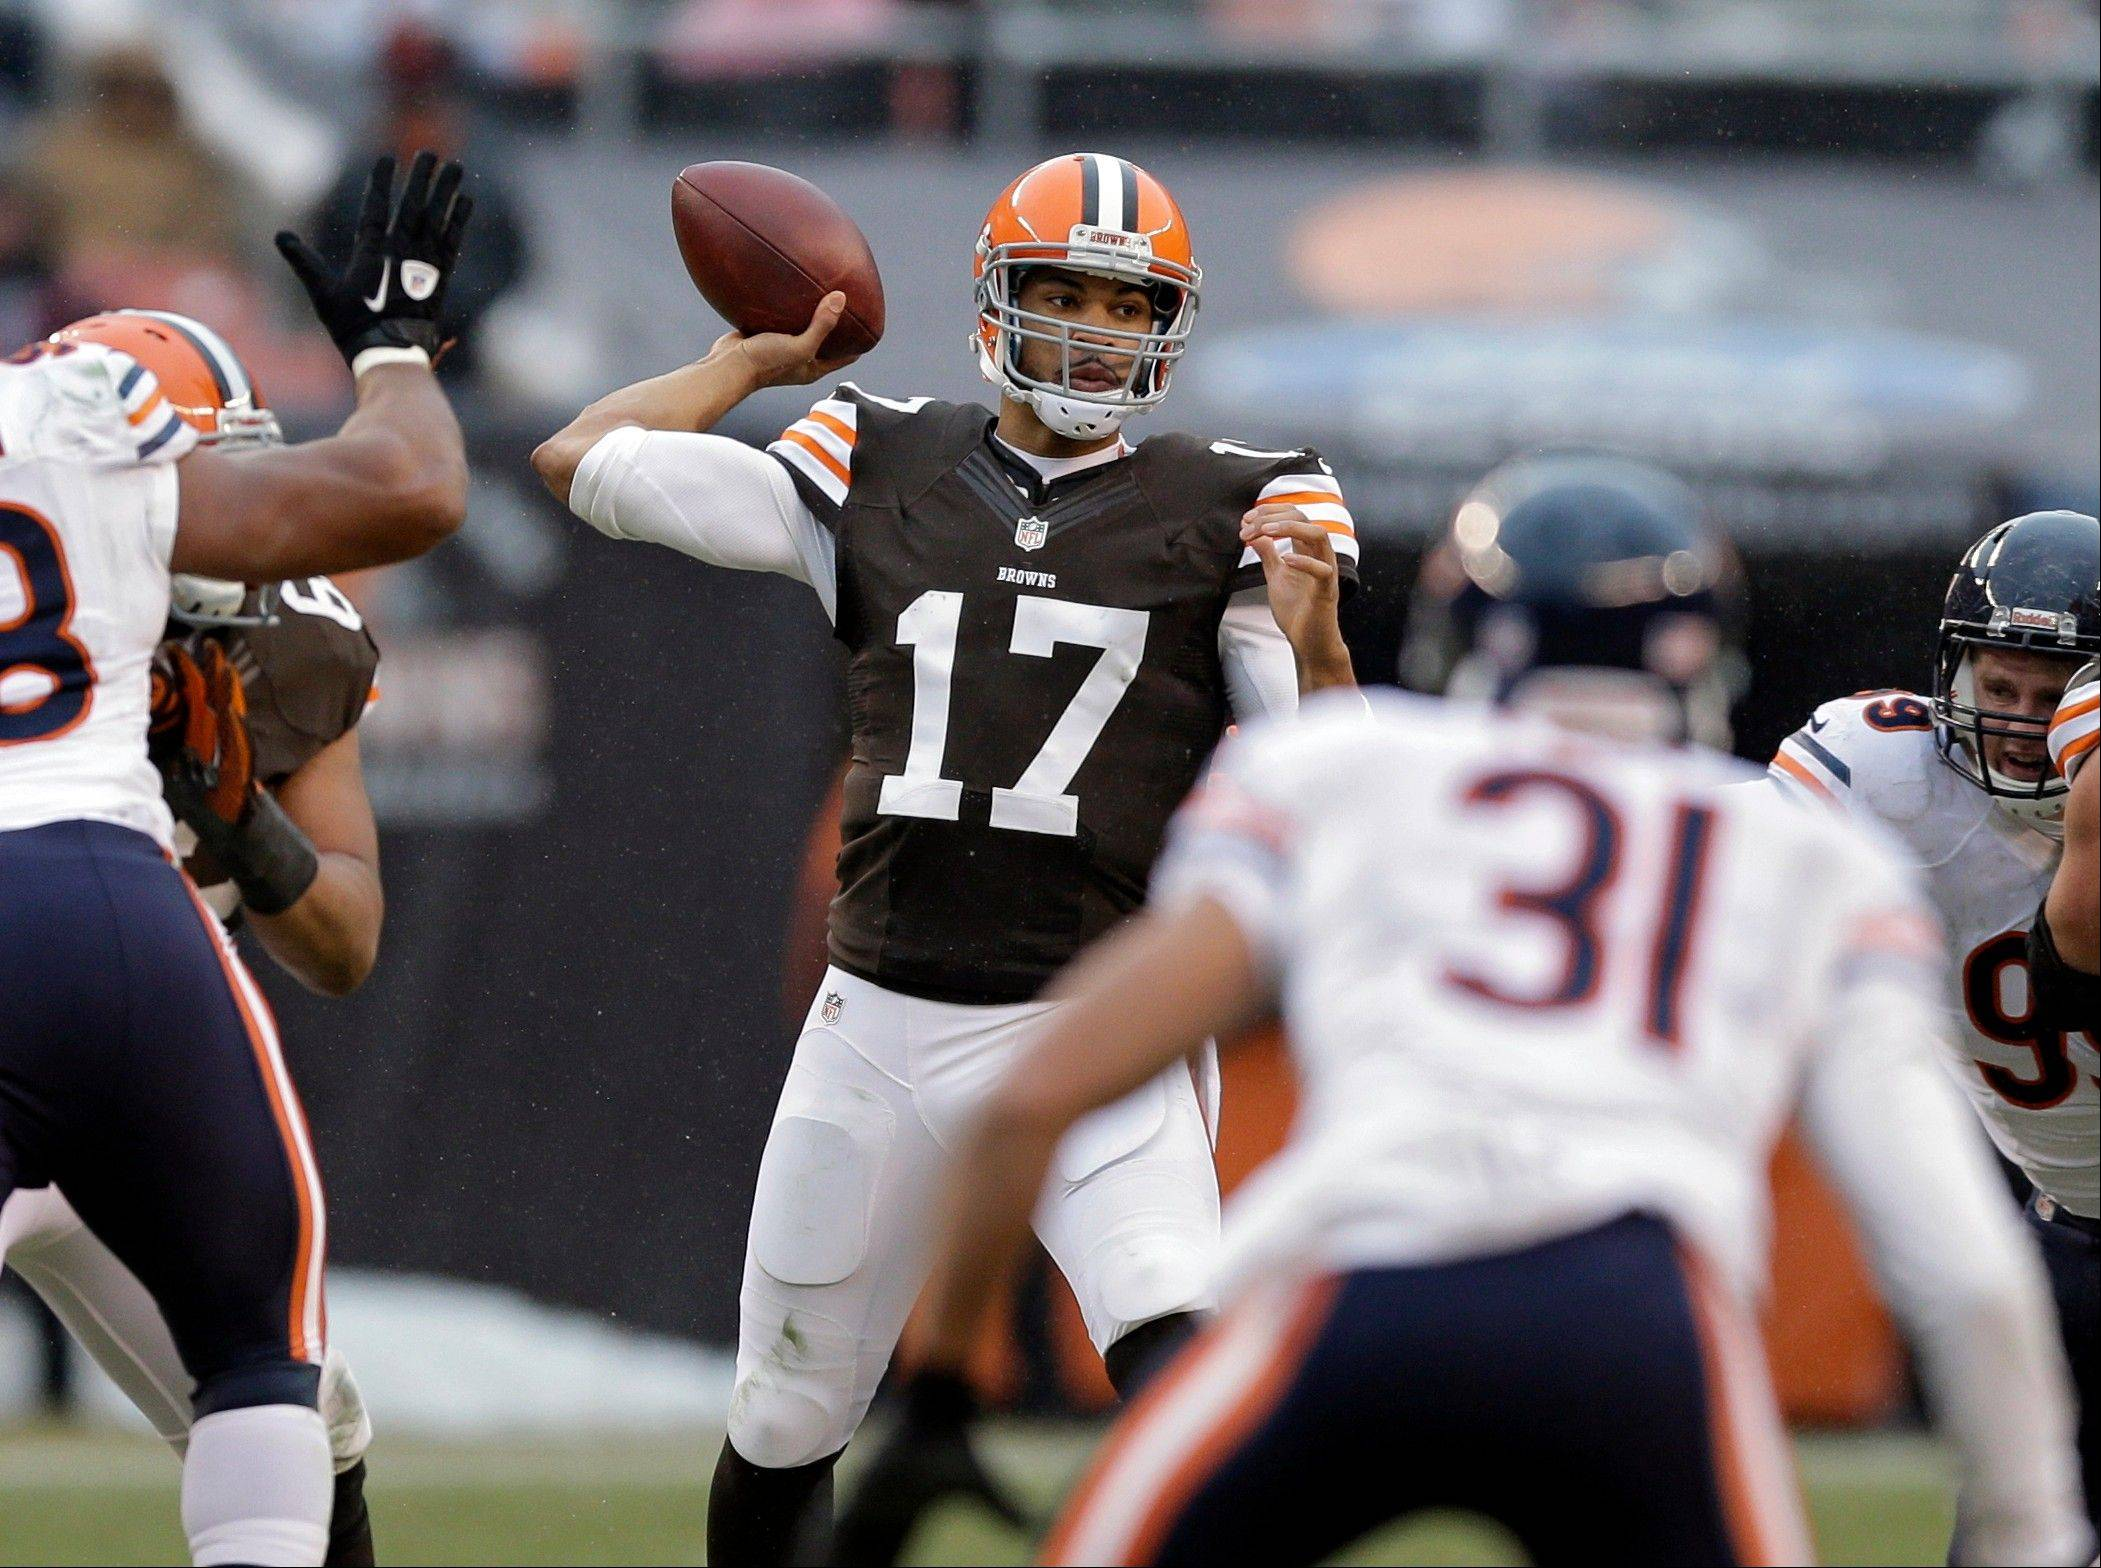 Cleveland Browns quarterback Jason Campbell (17) passes against the Chicago Bears in the fourth quarter.